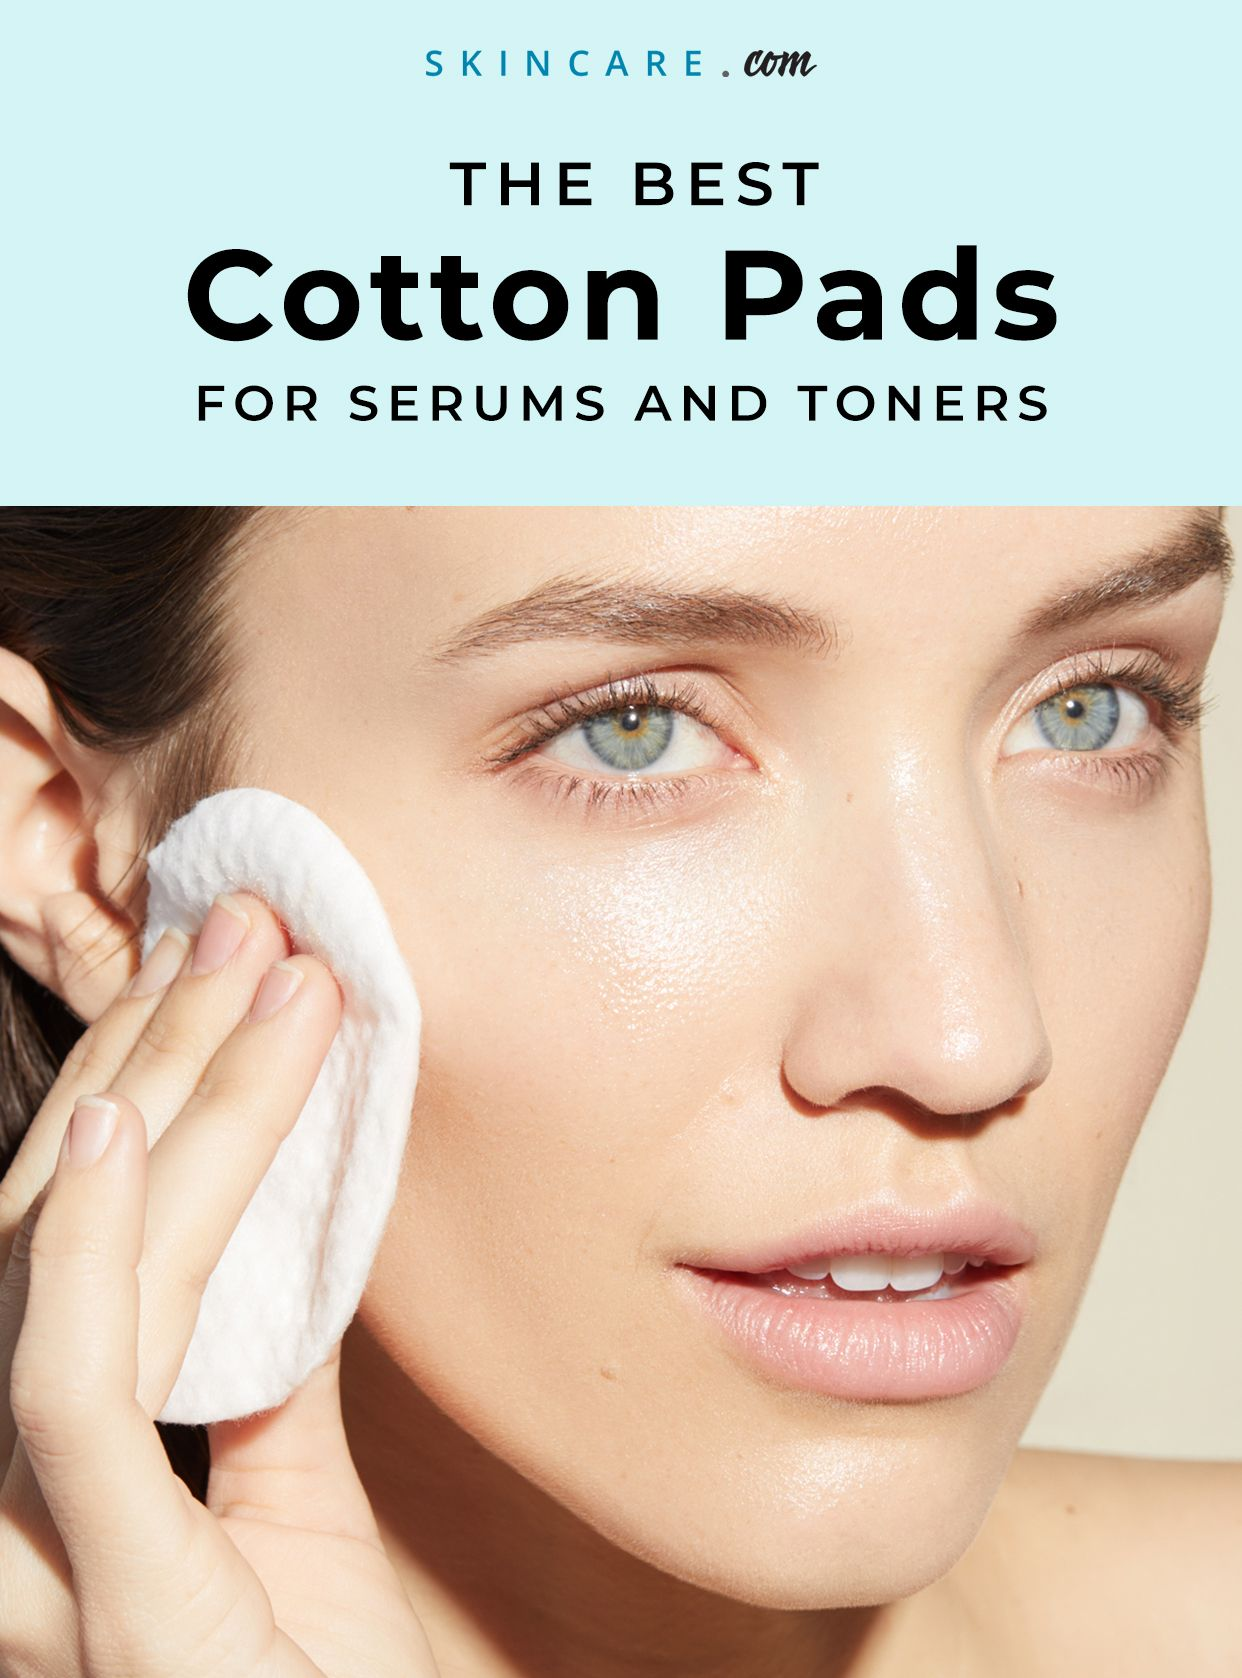 6 Best Cotton Pads For Applying Your Skin Care According To Reddit Skincare Com By L Oreal Beginner Skin Care Routine Affordable Skin Care Facial Skin Care